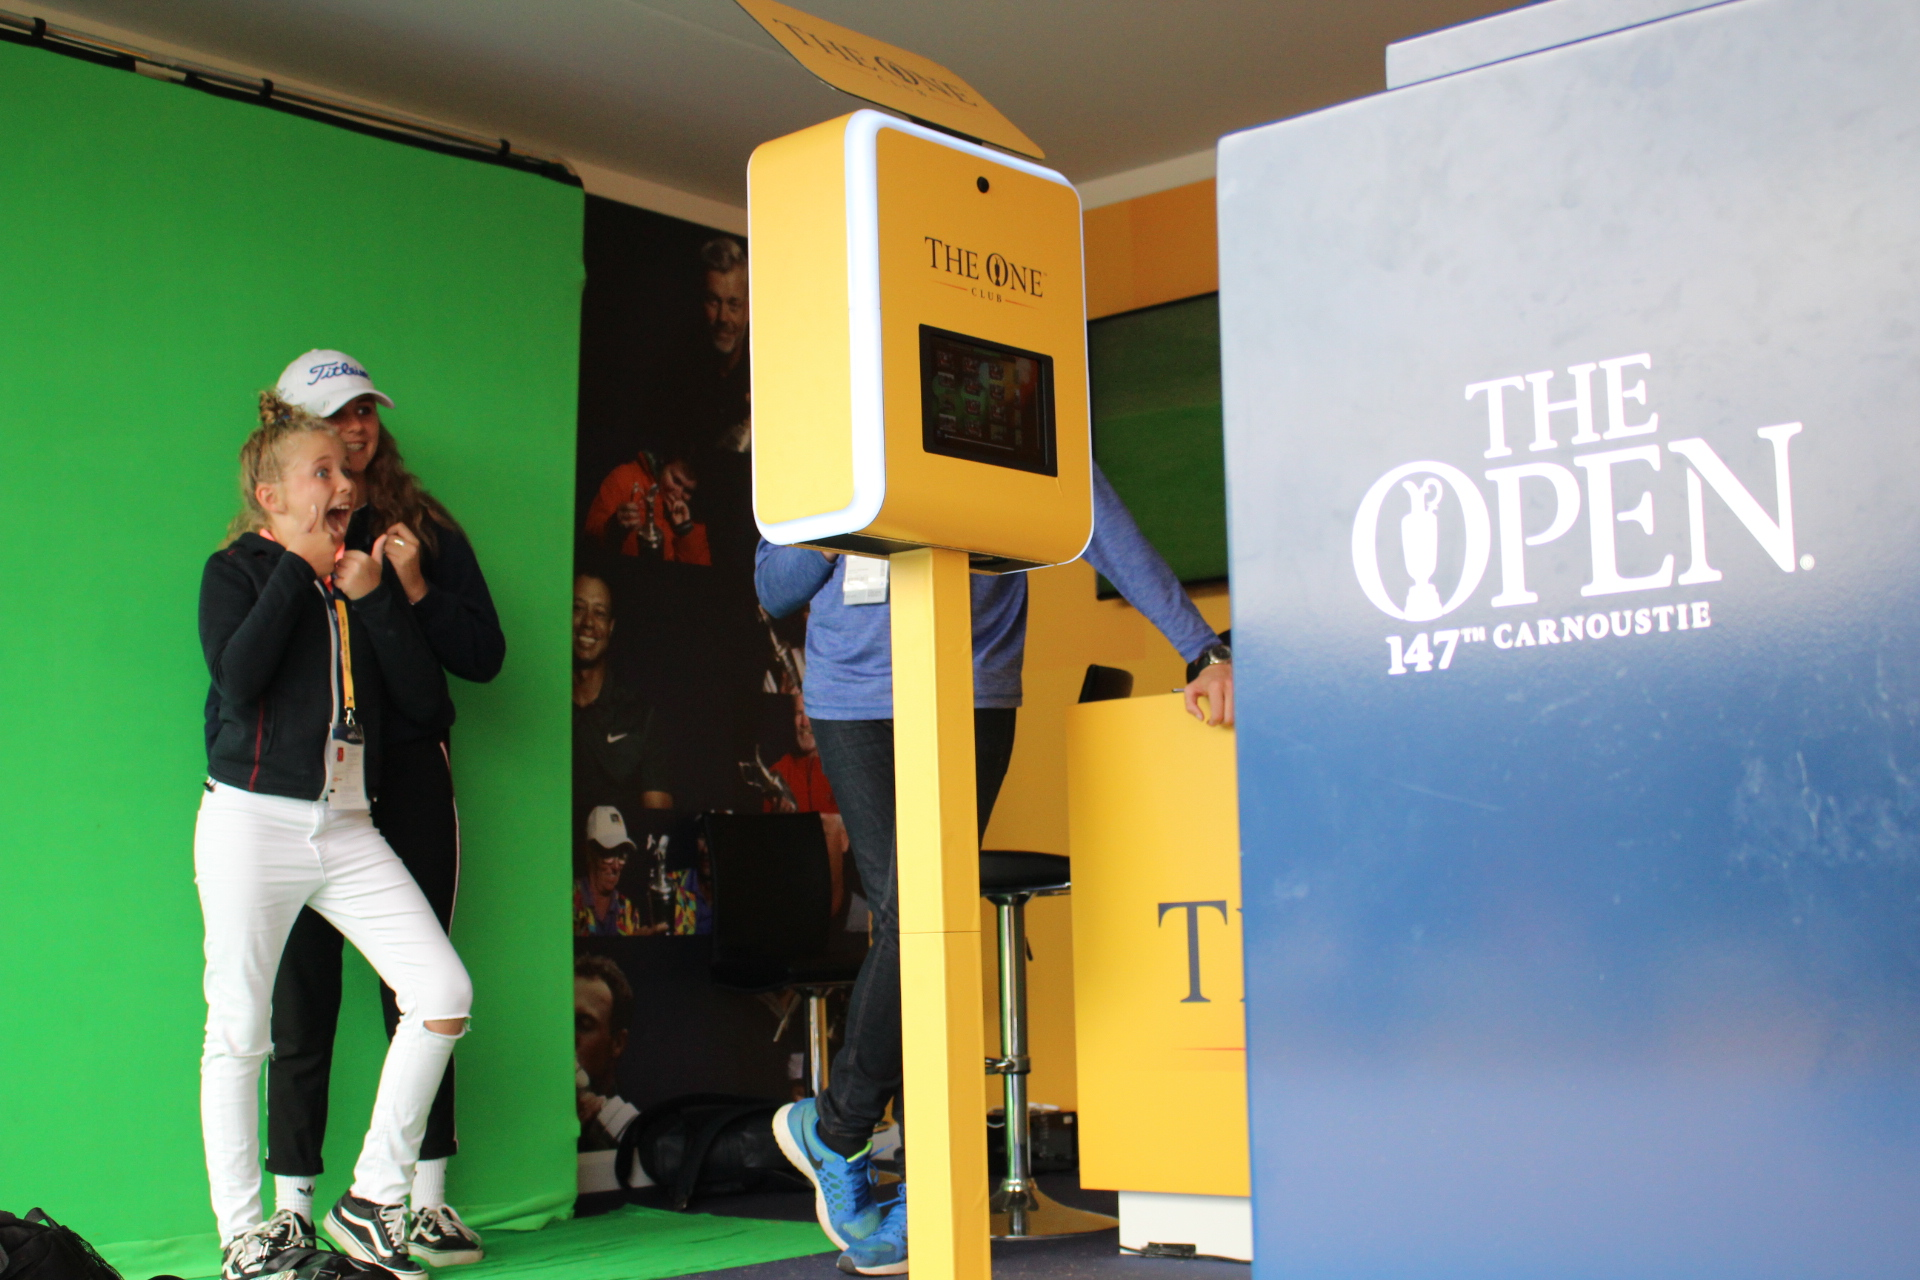 Custom Photo Experience for The Open